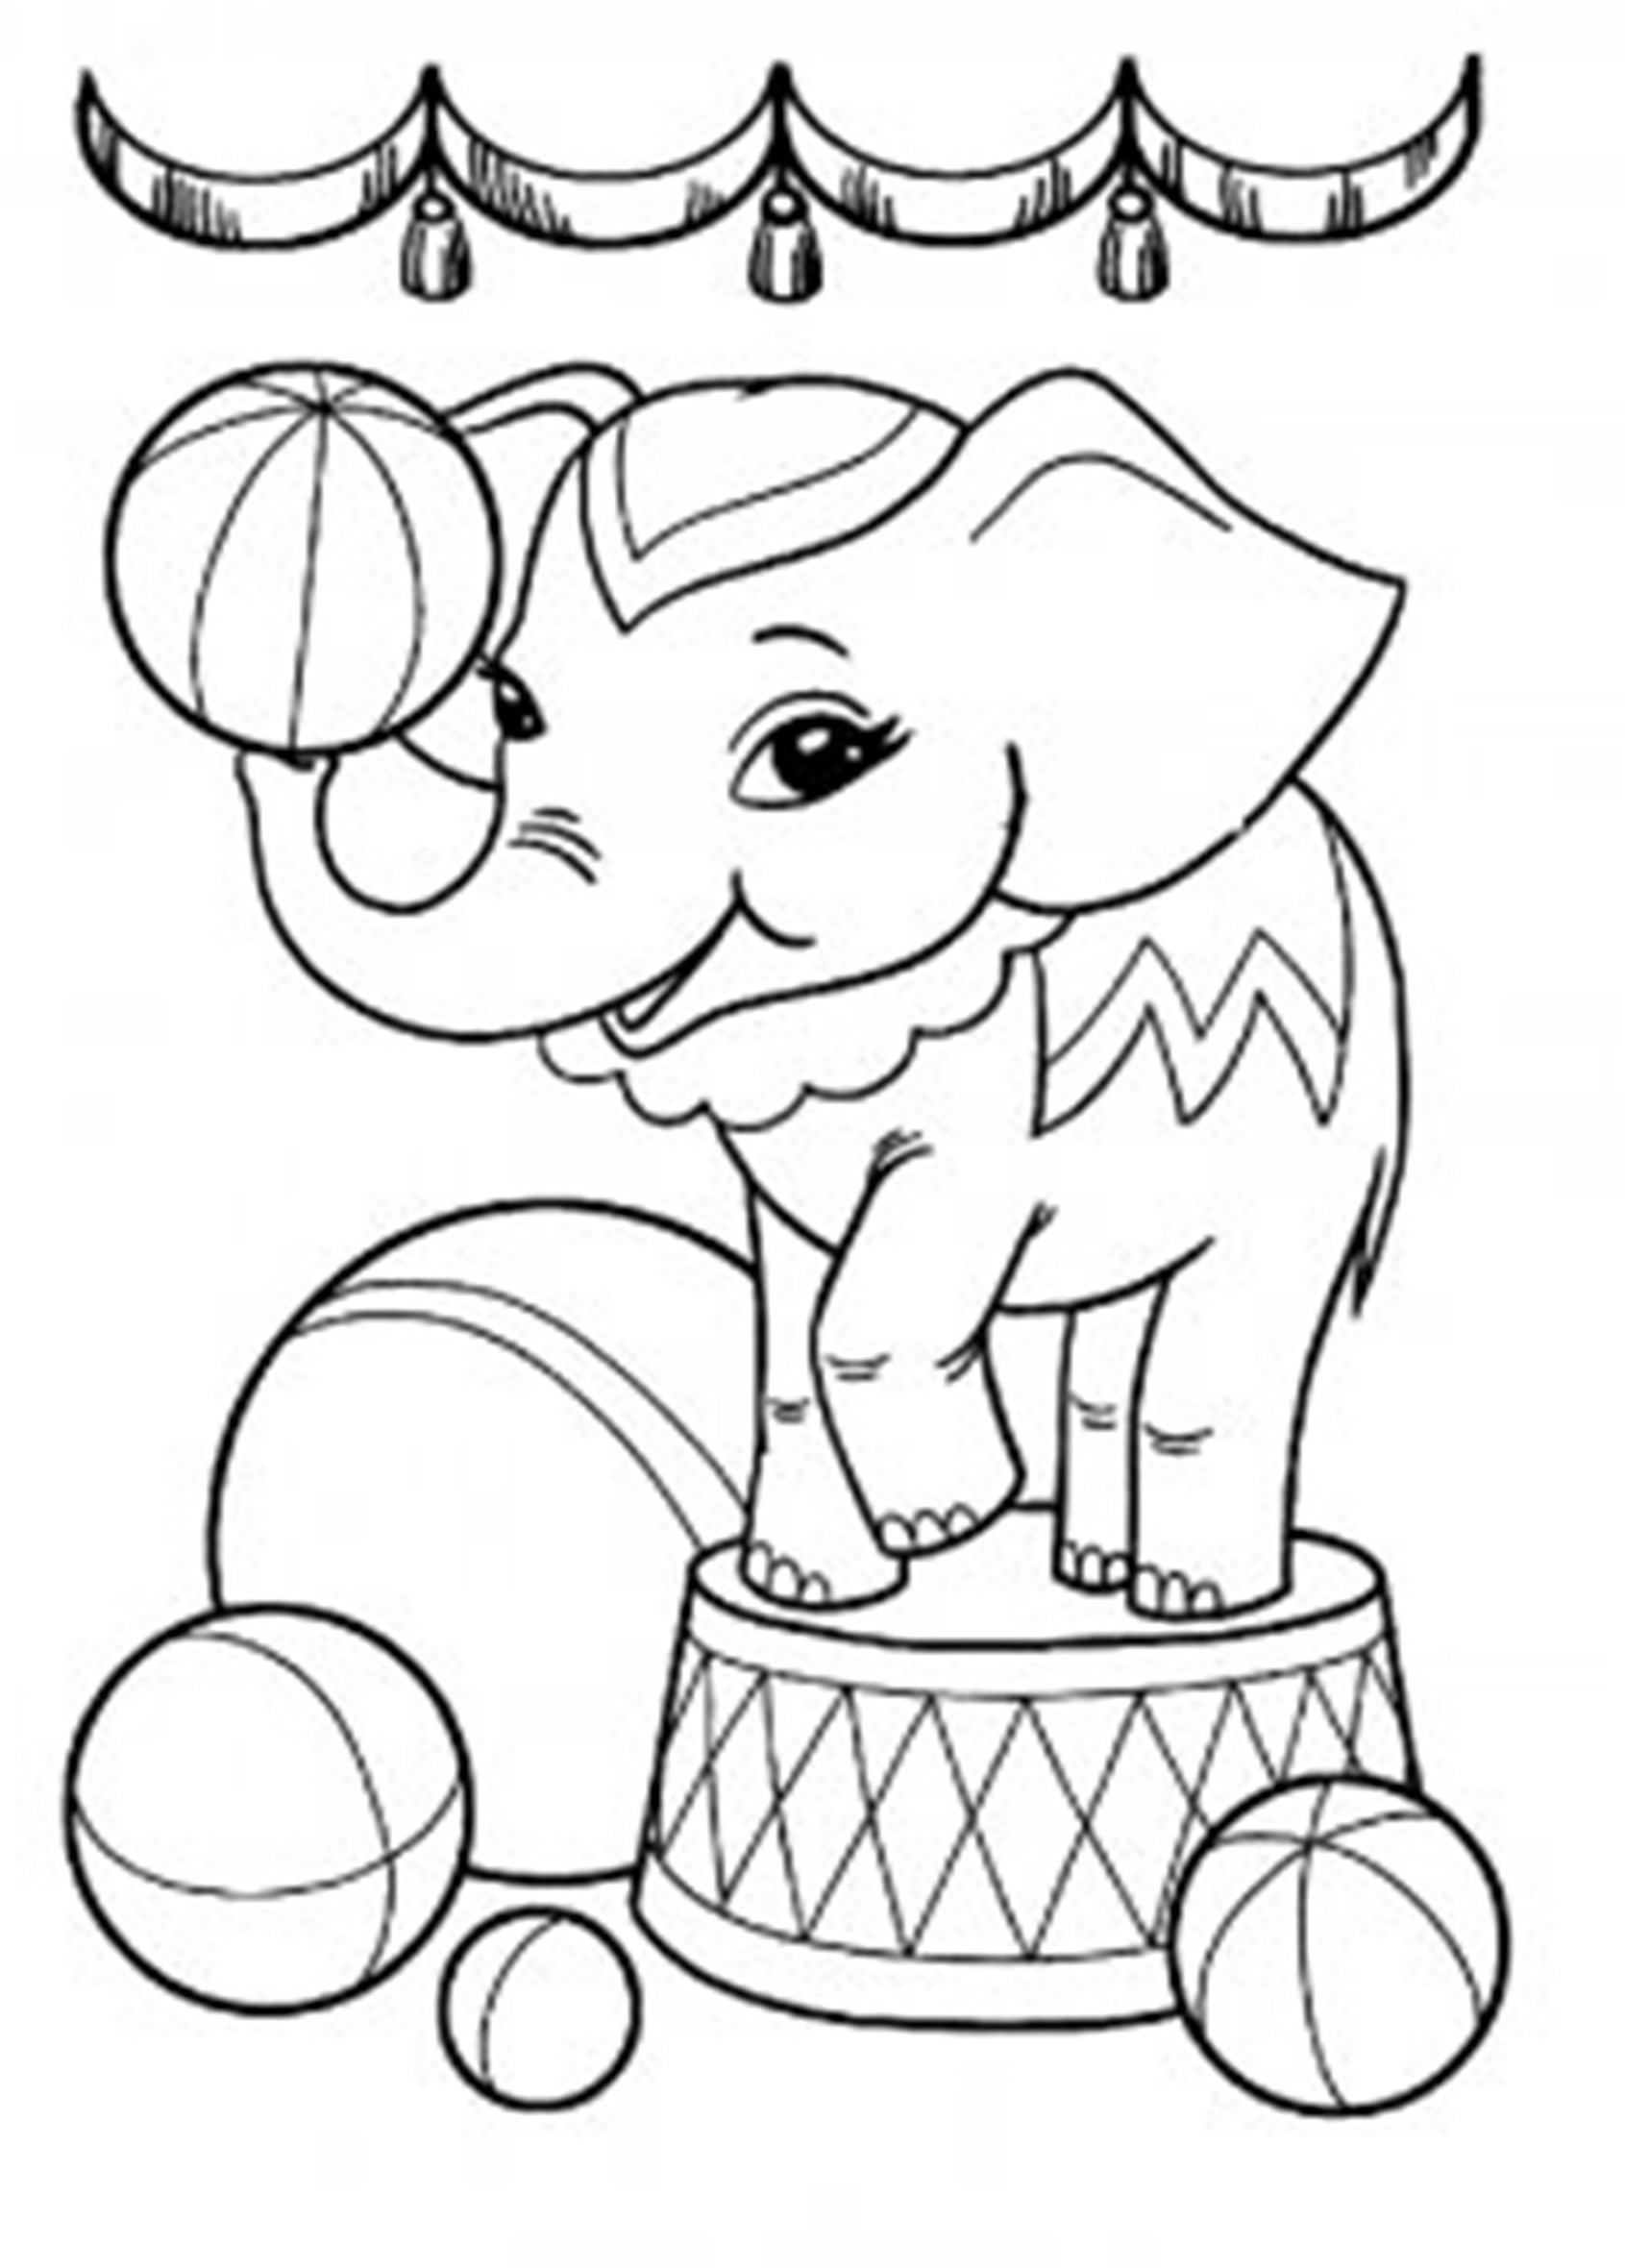 free printable elephant coloring pages print download teaching kids through elephant coloring printable pages elephant free coloring